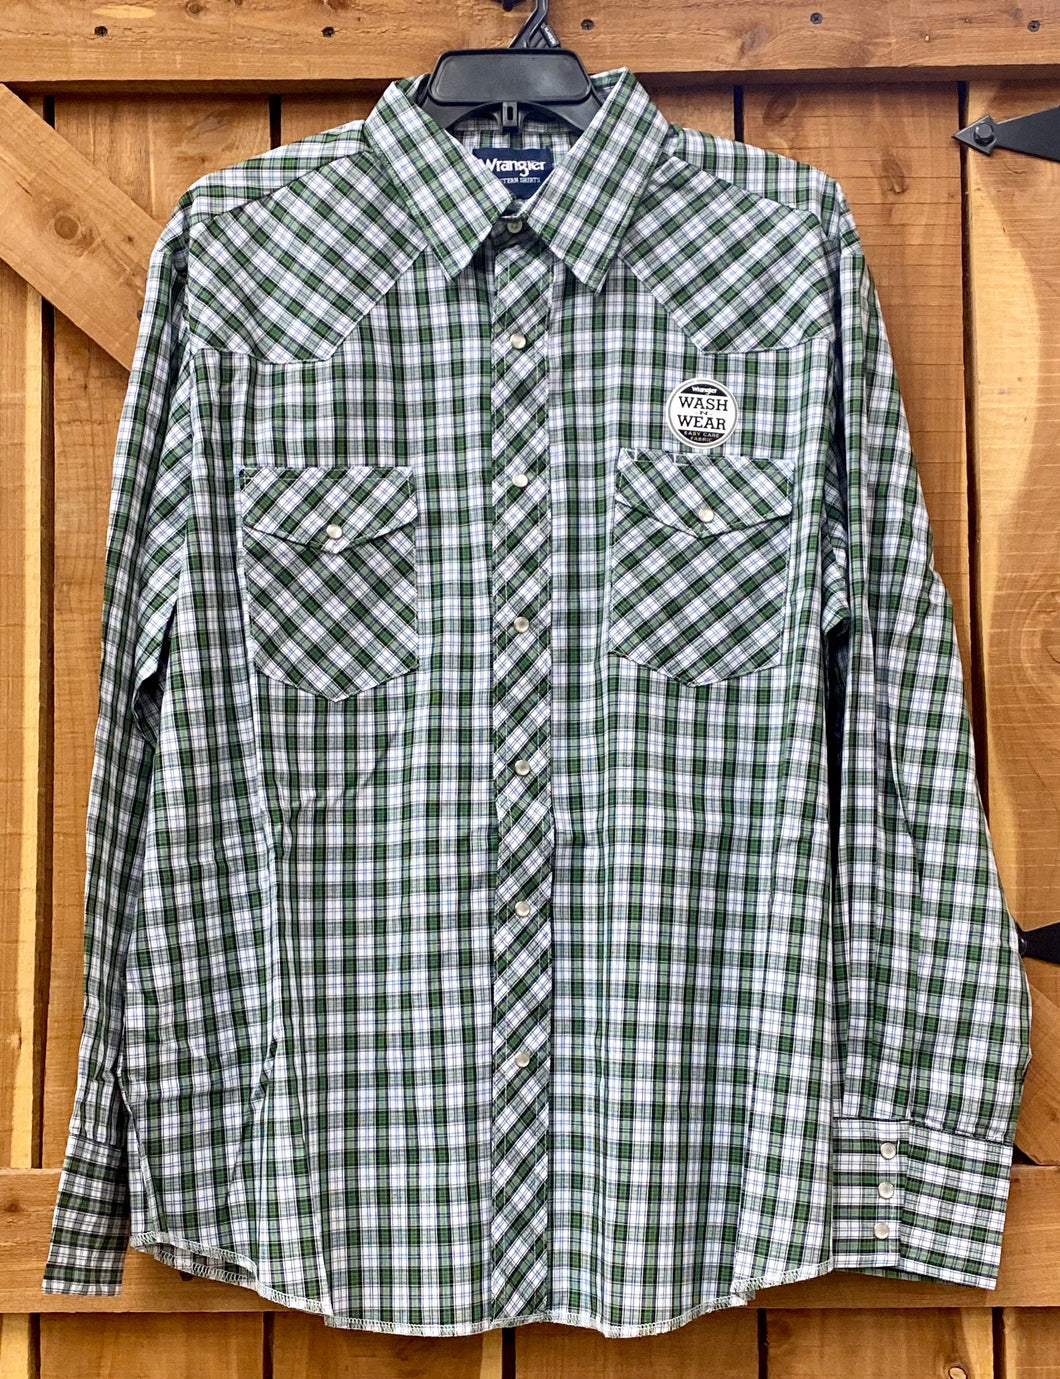 Wrangler Long Sleeve Pearl Snap Green and Black plaid shirt